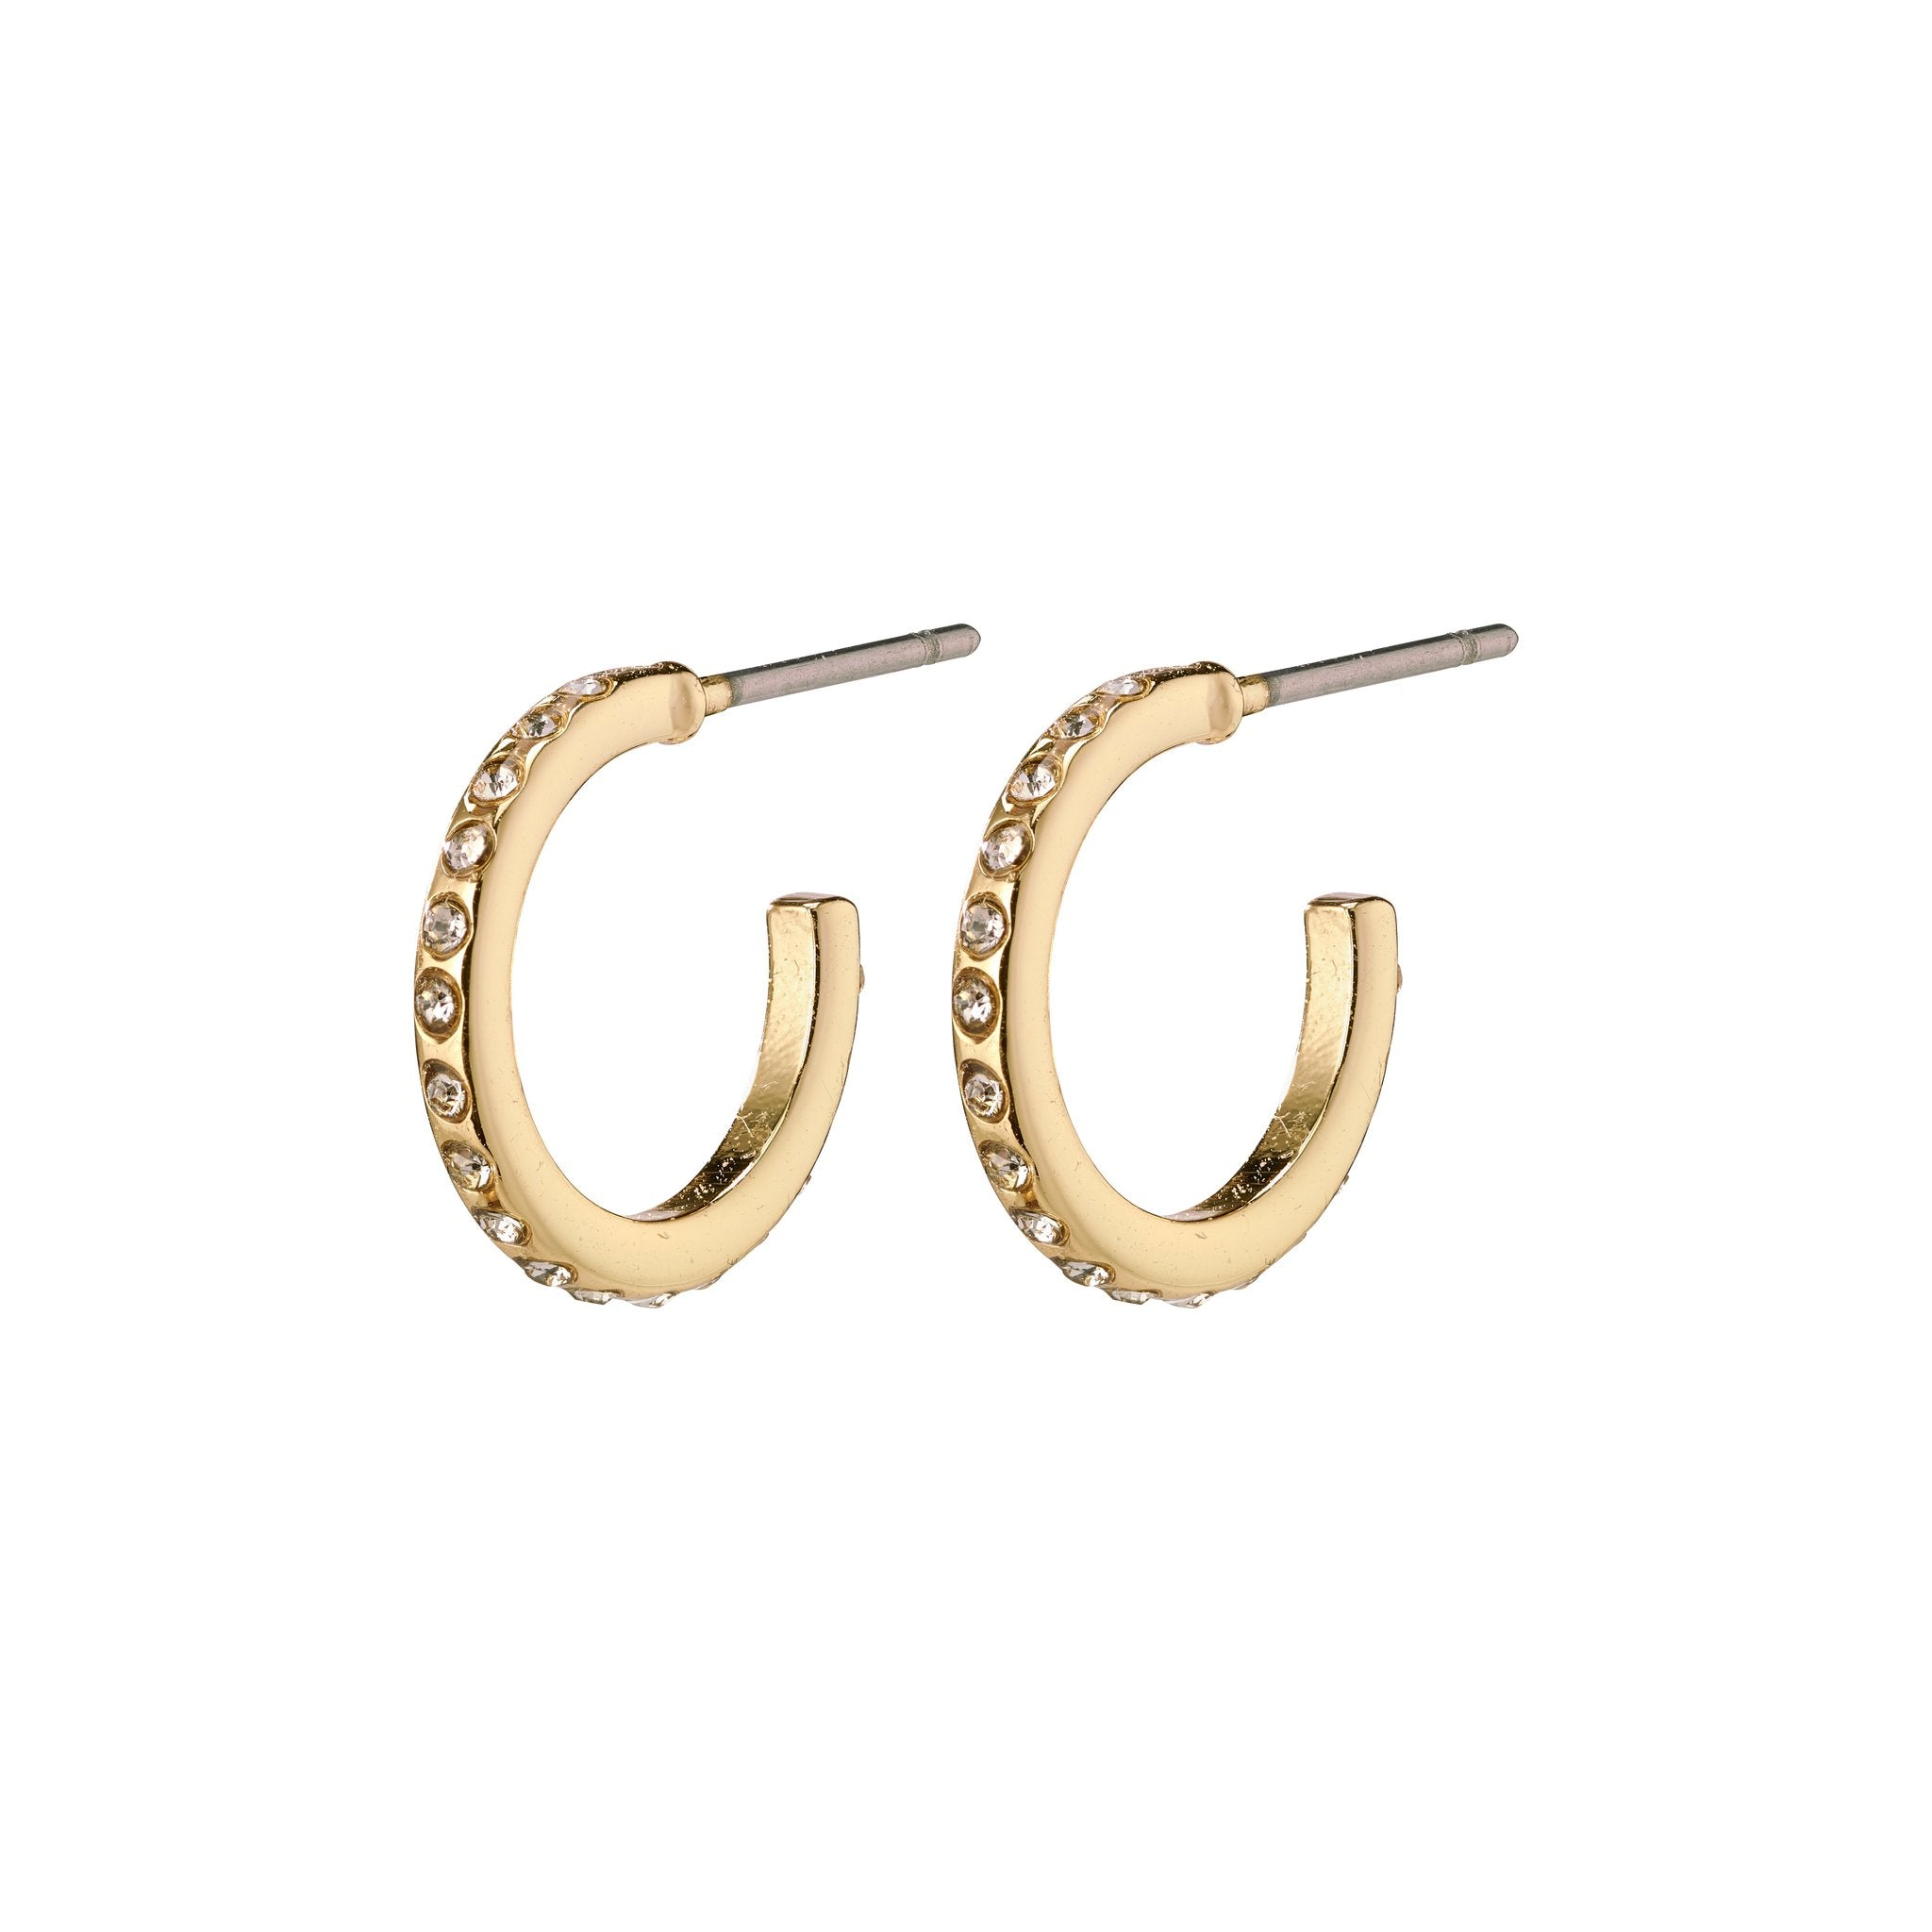 Roberta Pi Earrings - Gold Plated Crystal - 12mm